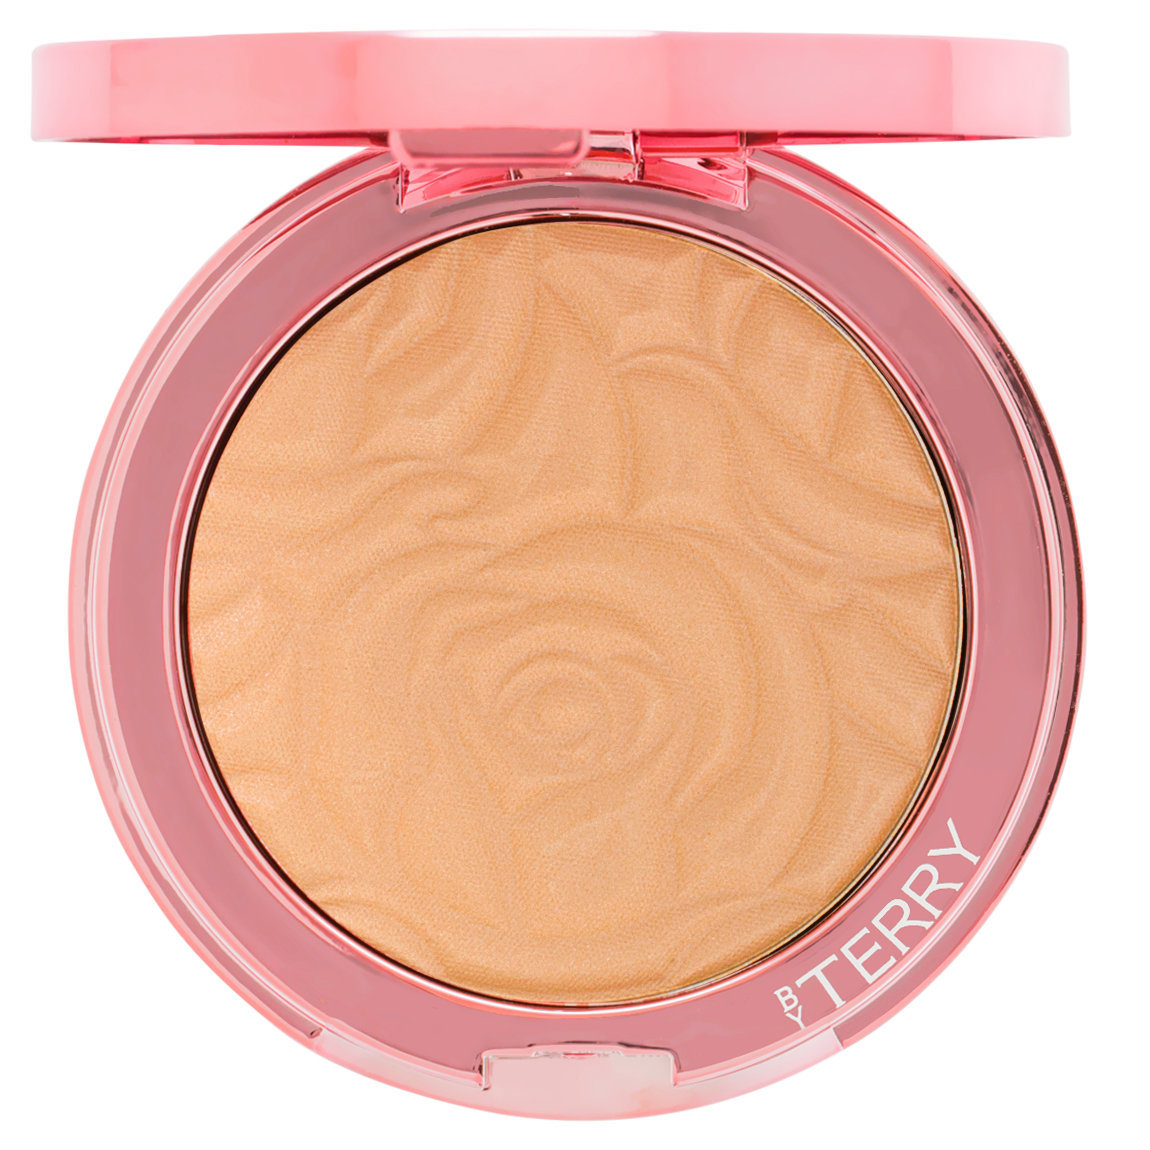 BY TERRY Brightening CC Serum Powder Apricot Glow product smear.